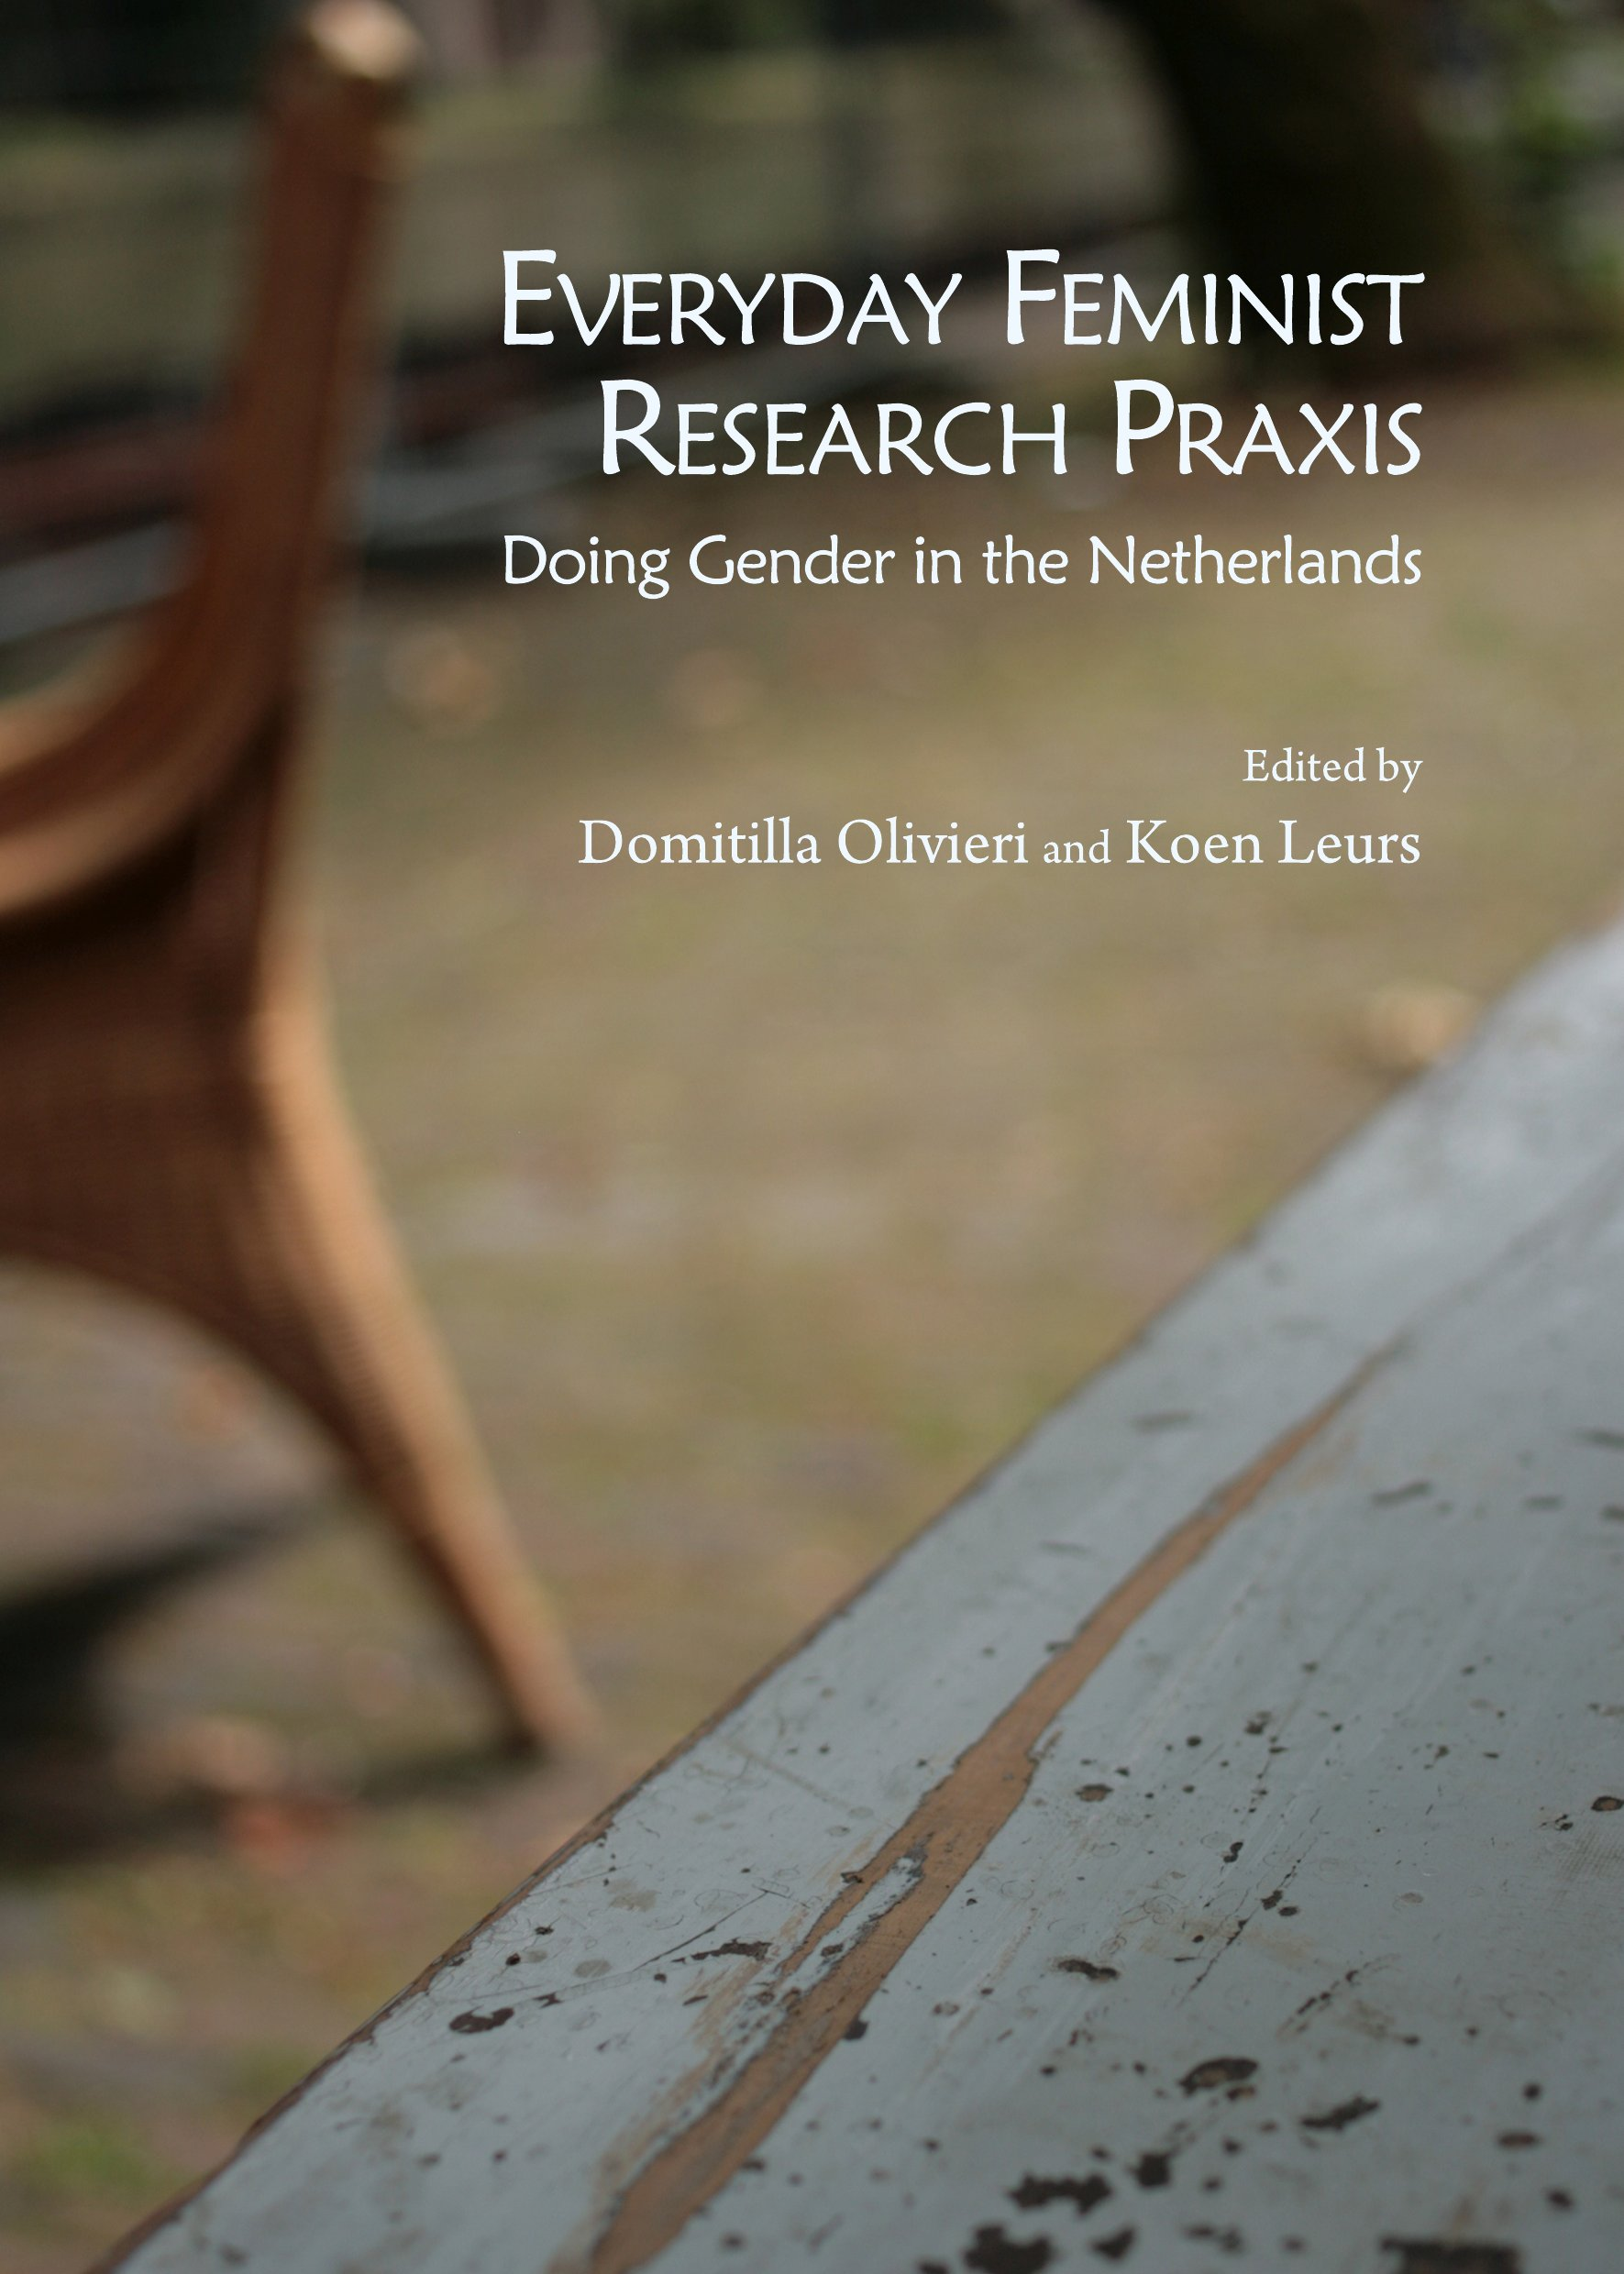 Everyday Feminist Research Praxis: Doing Gender in the Netherlands